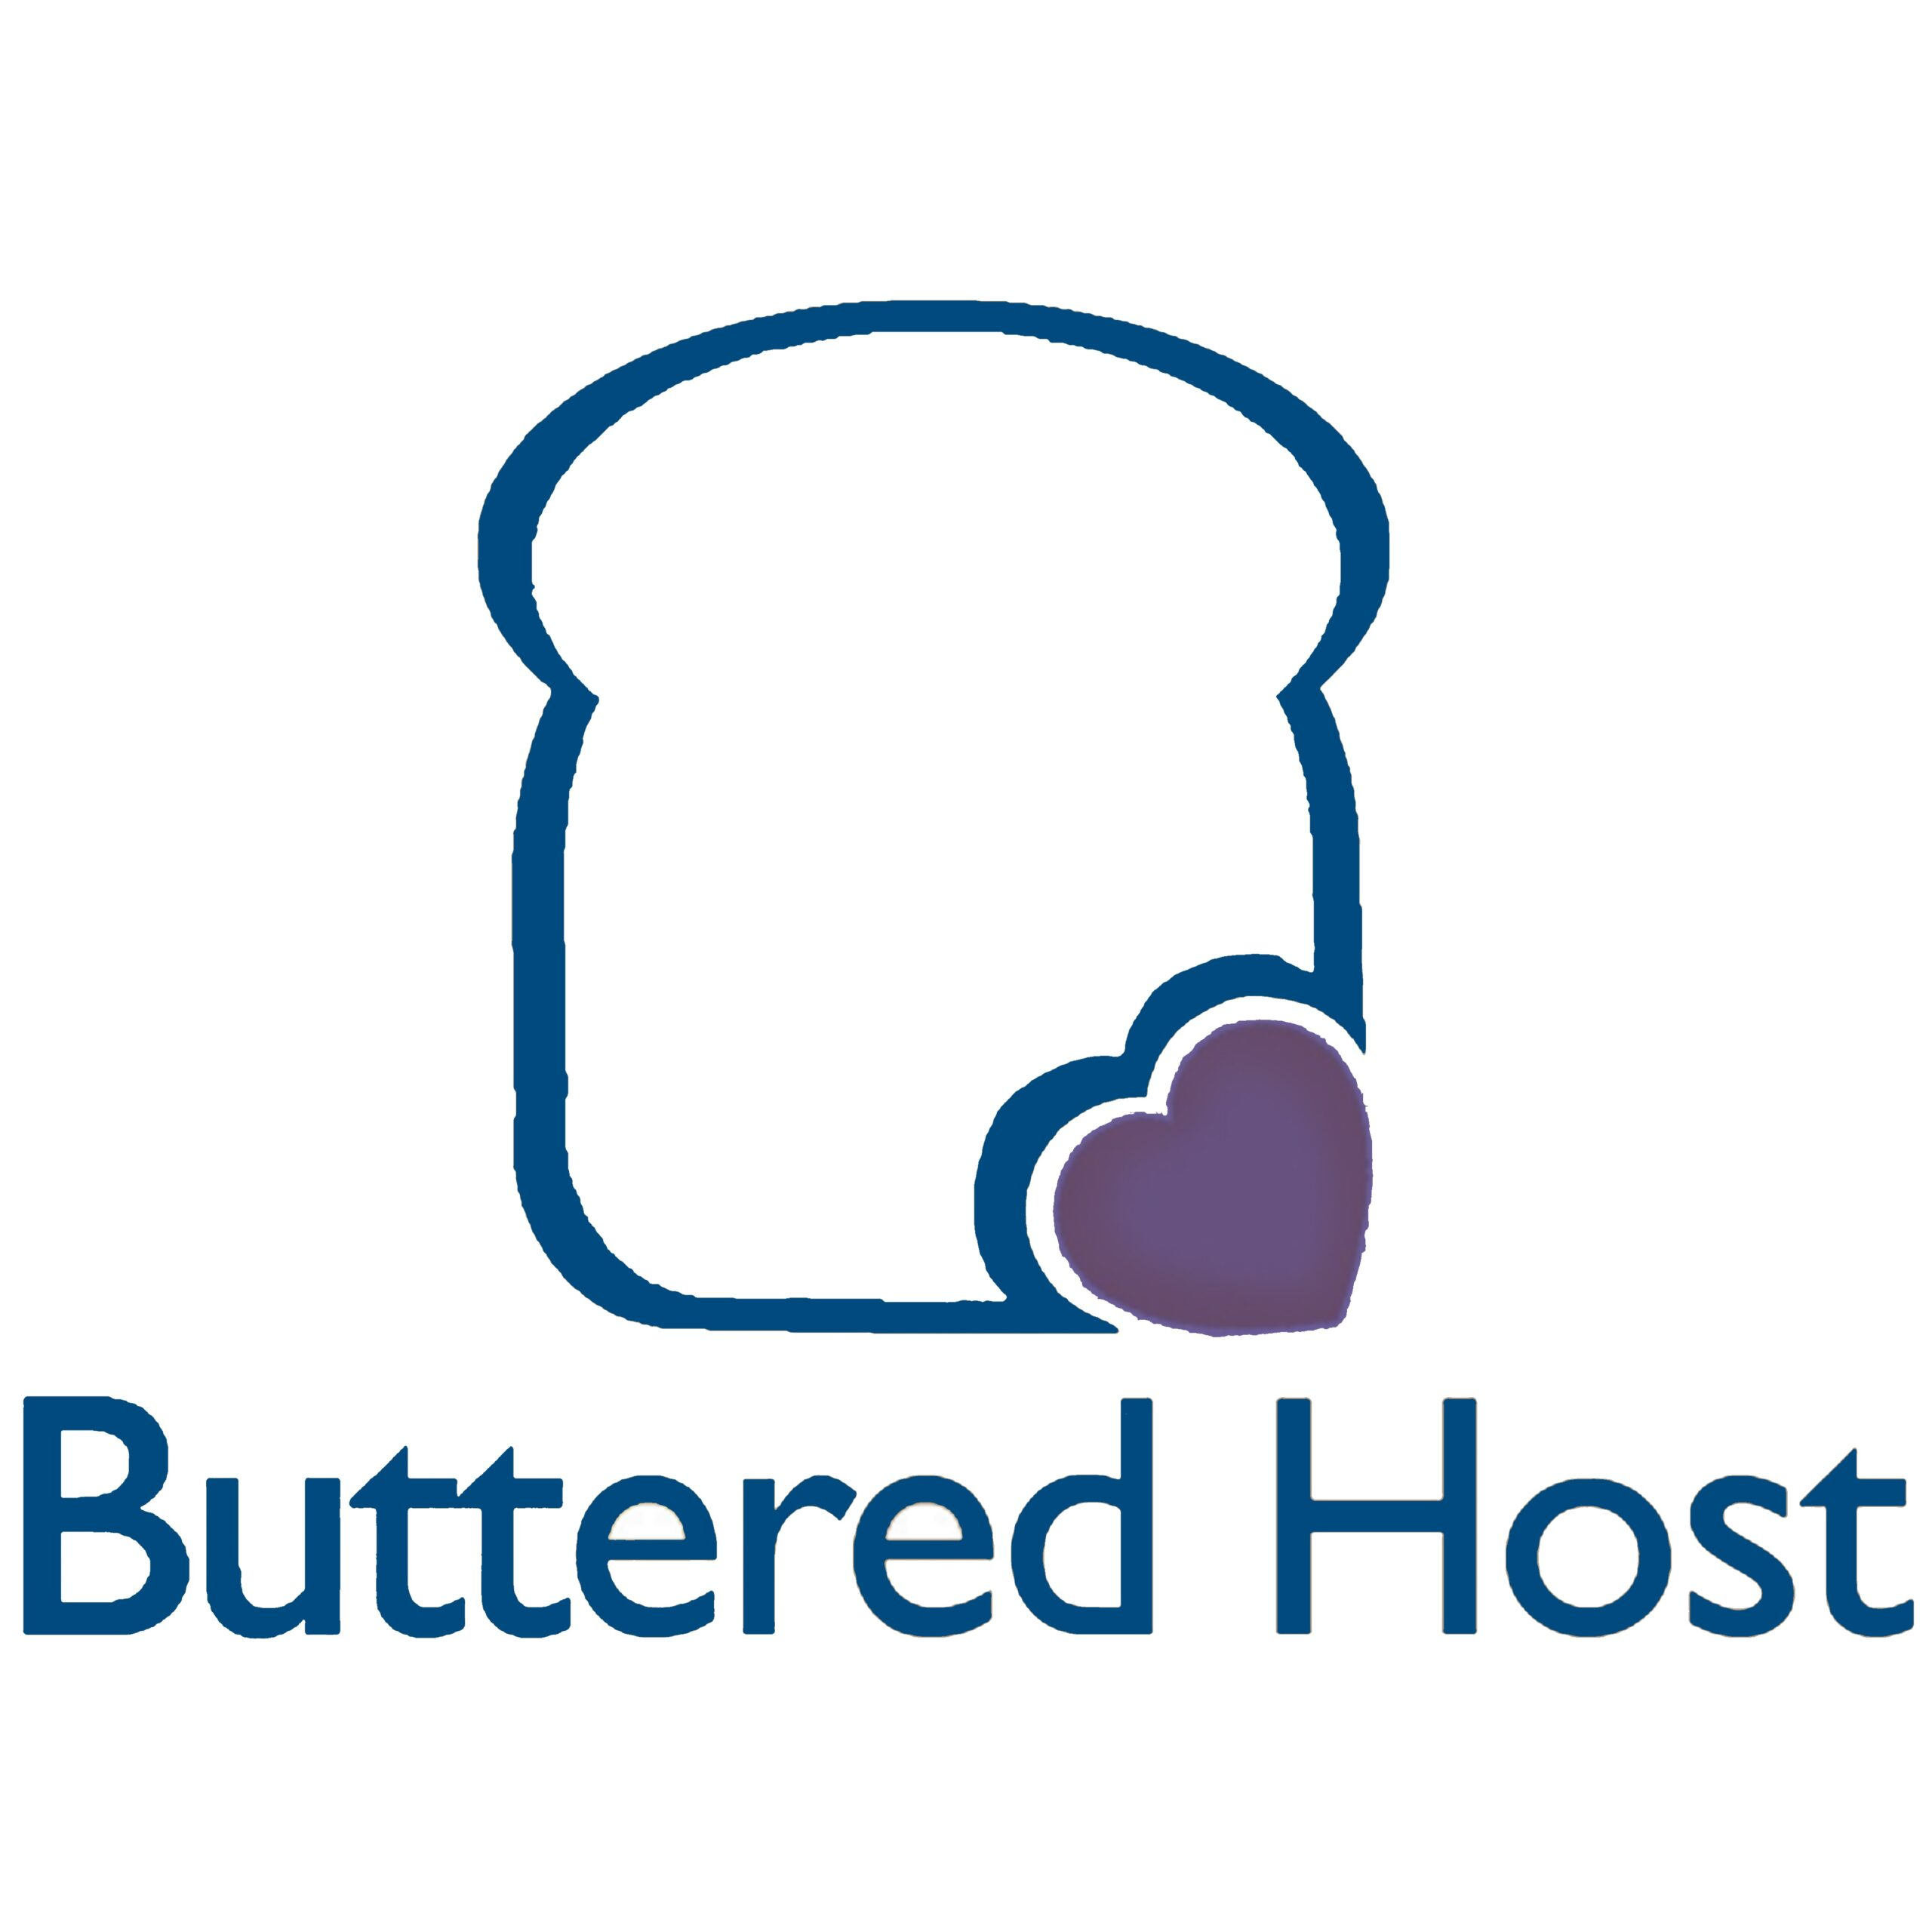 Butteredhost